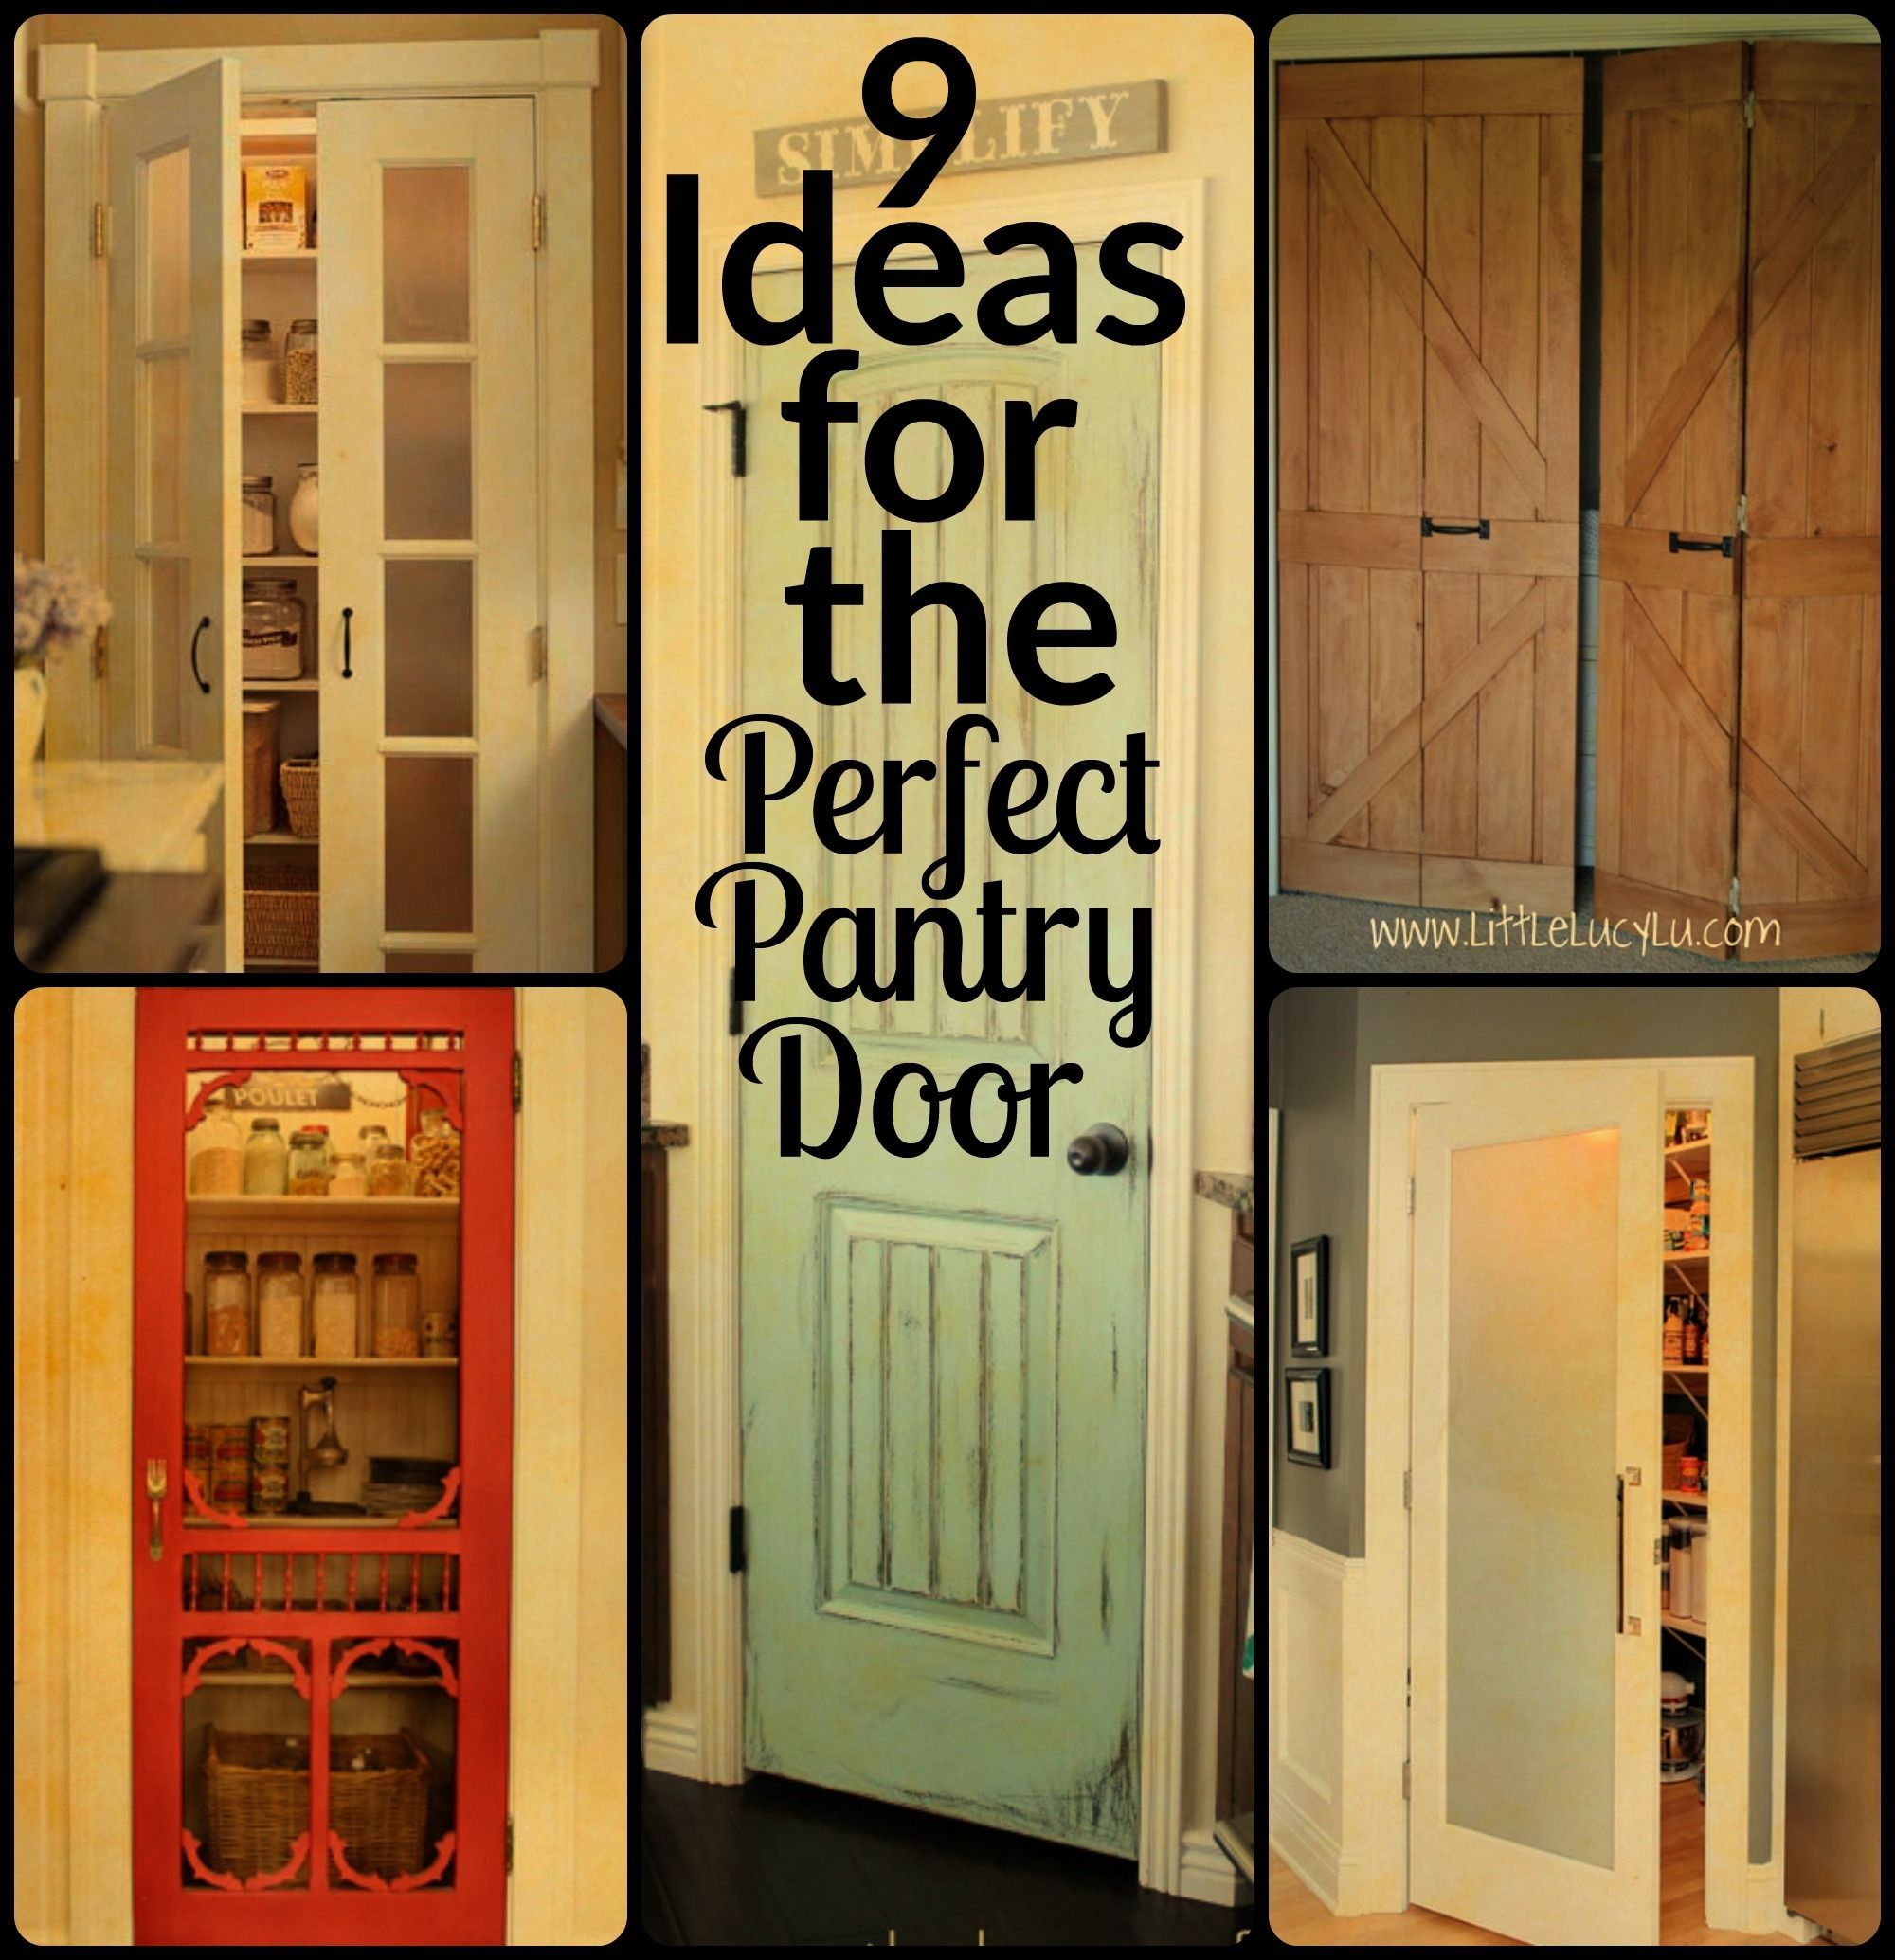 Modernize your pantry door with one of these nifty and DIYable ideas ...